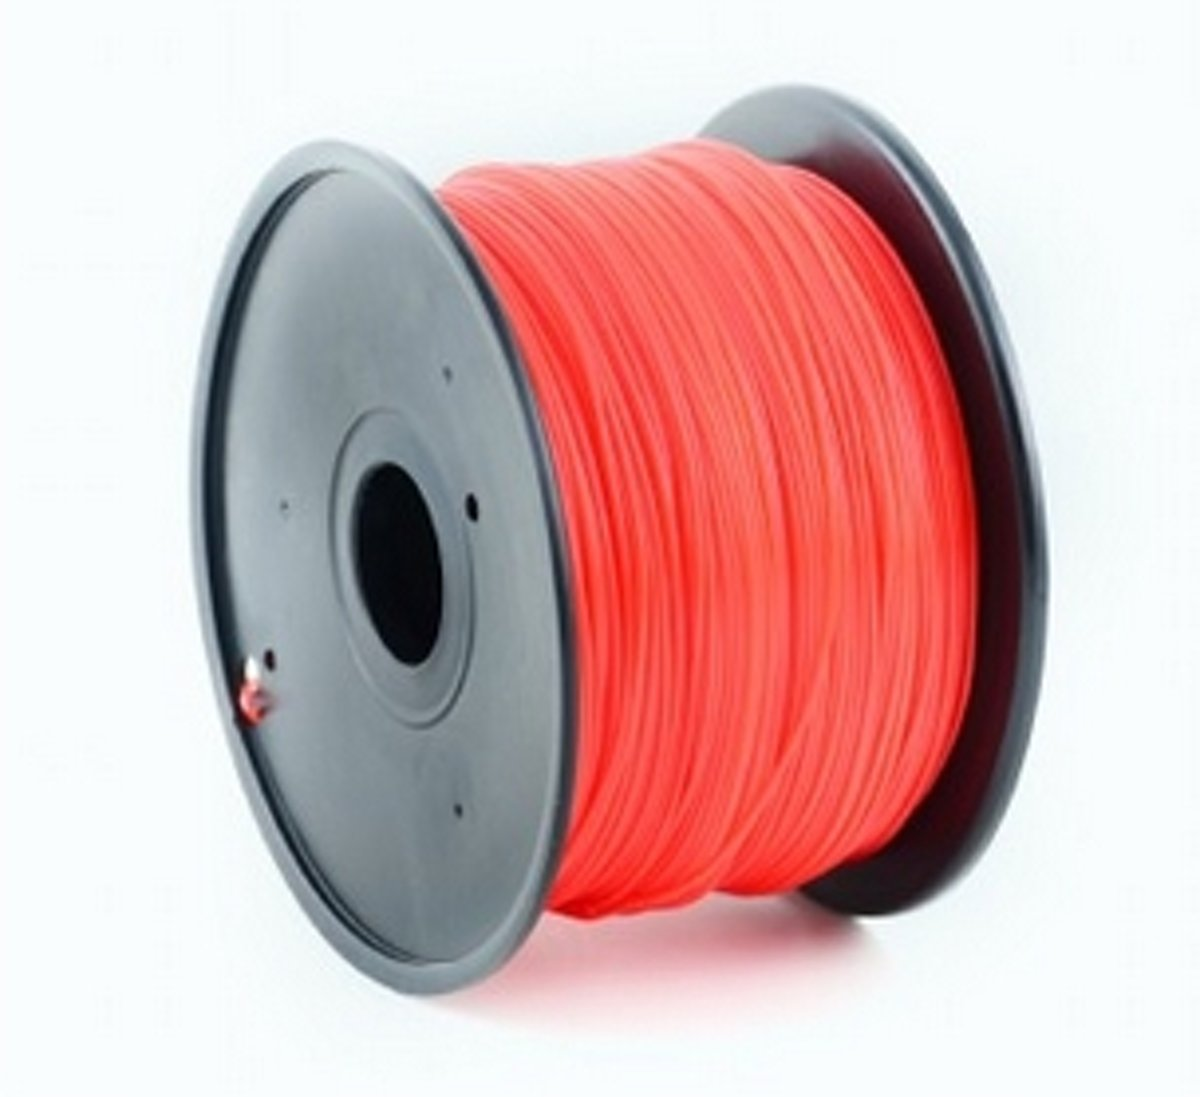 Gembird3 3DP-ABS1.75-01-R - Filament ABS, 1.75 mm, rood